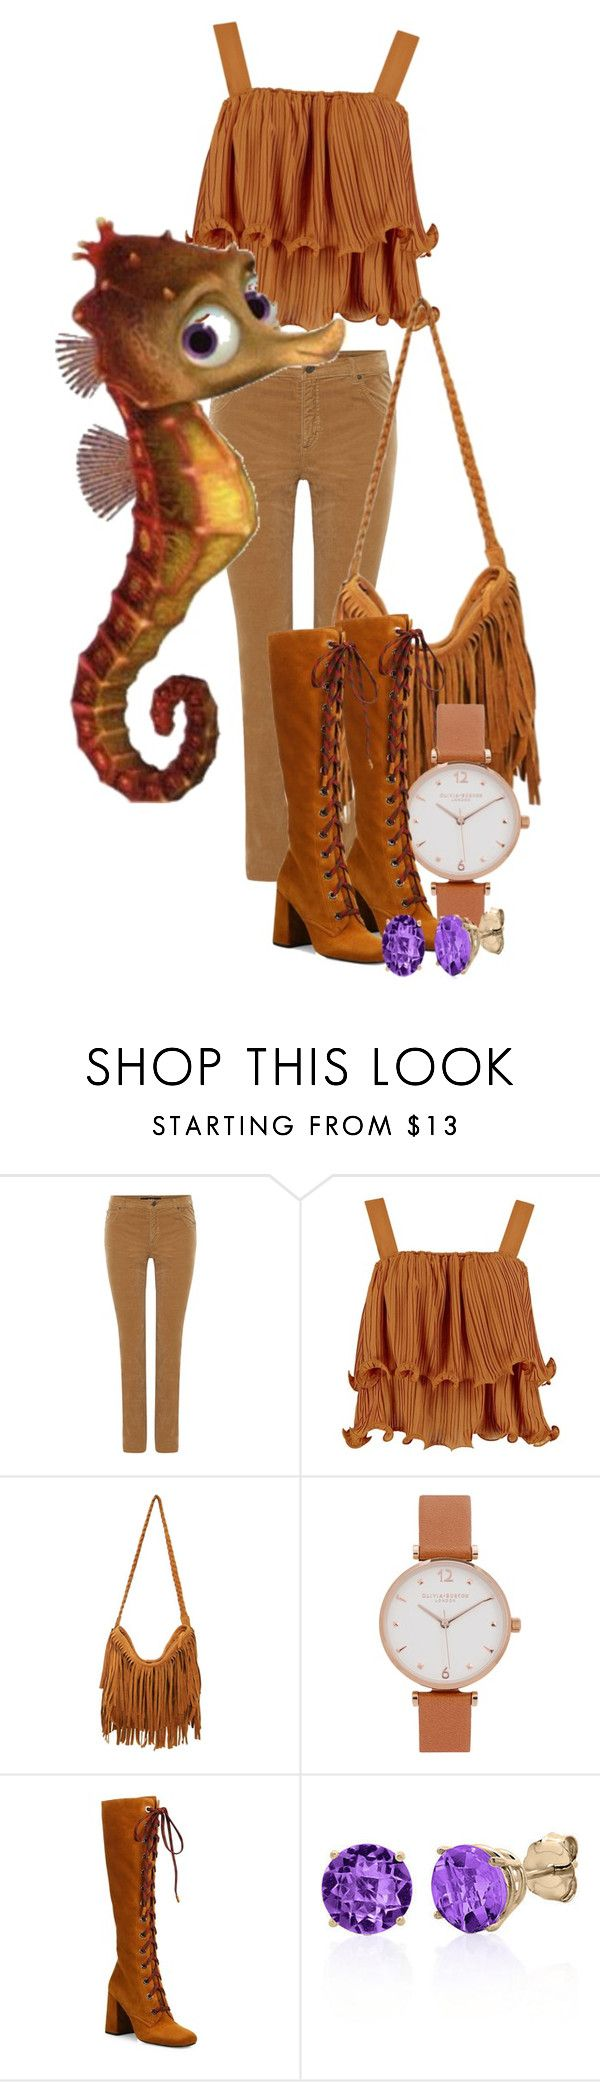 """Sheldon -Finding Nemo"" by awesome-antoinette ❤ liked on Polyvore featuring Oui, Olivia Burton, Prada and Belk & Co."